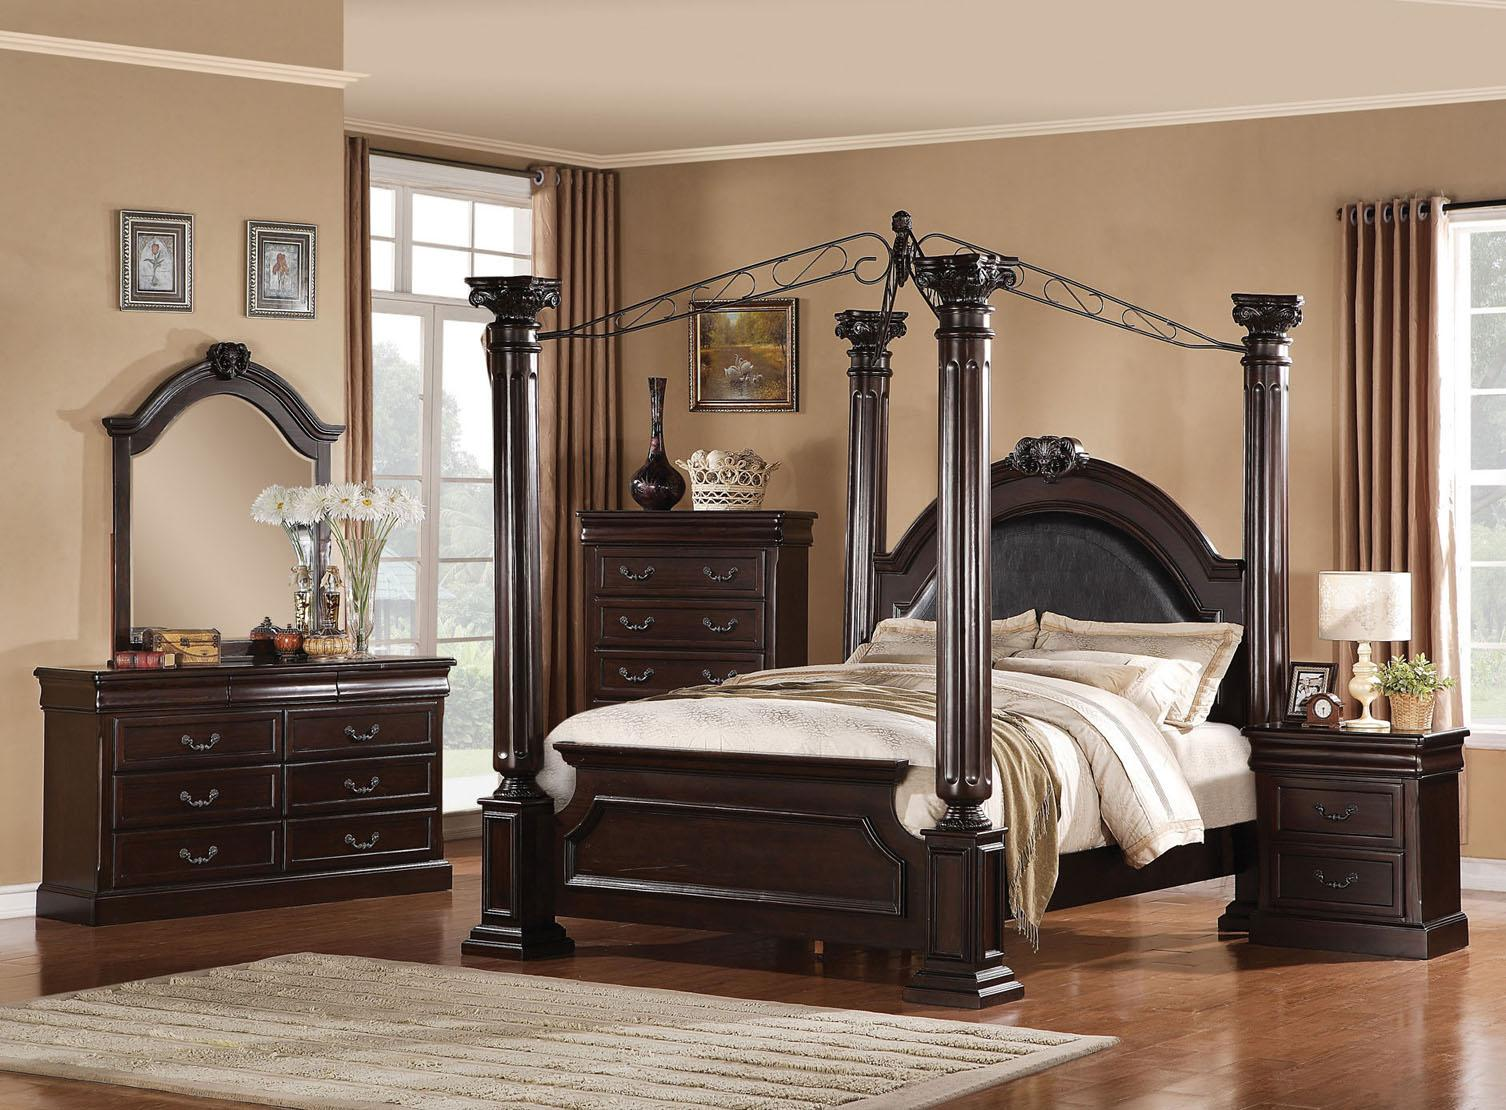 4 Poster Canopy King Bed Roman Empire King Bedroom Group By Acme Furniture At Rooms For Less